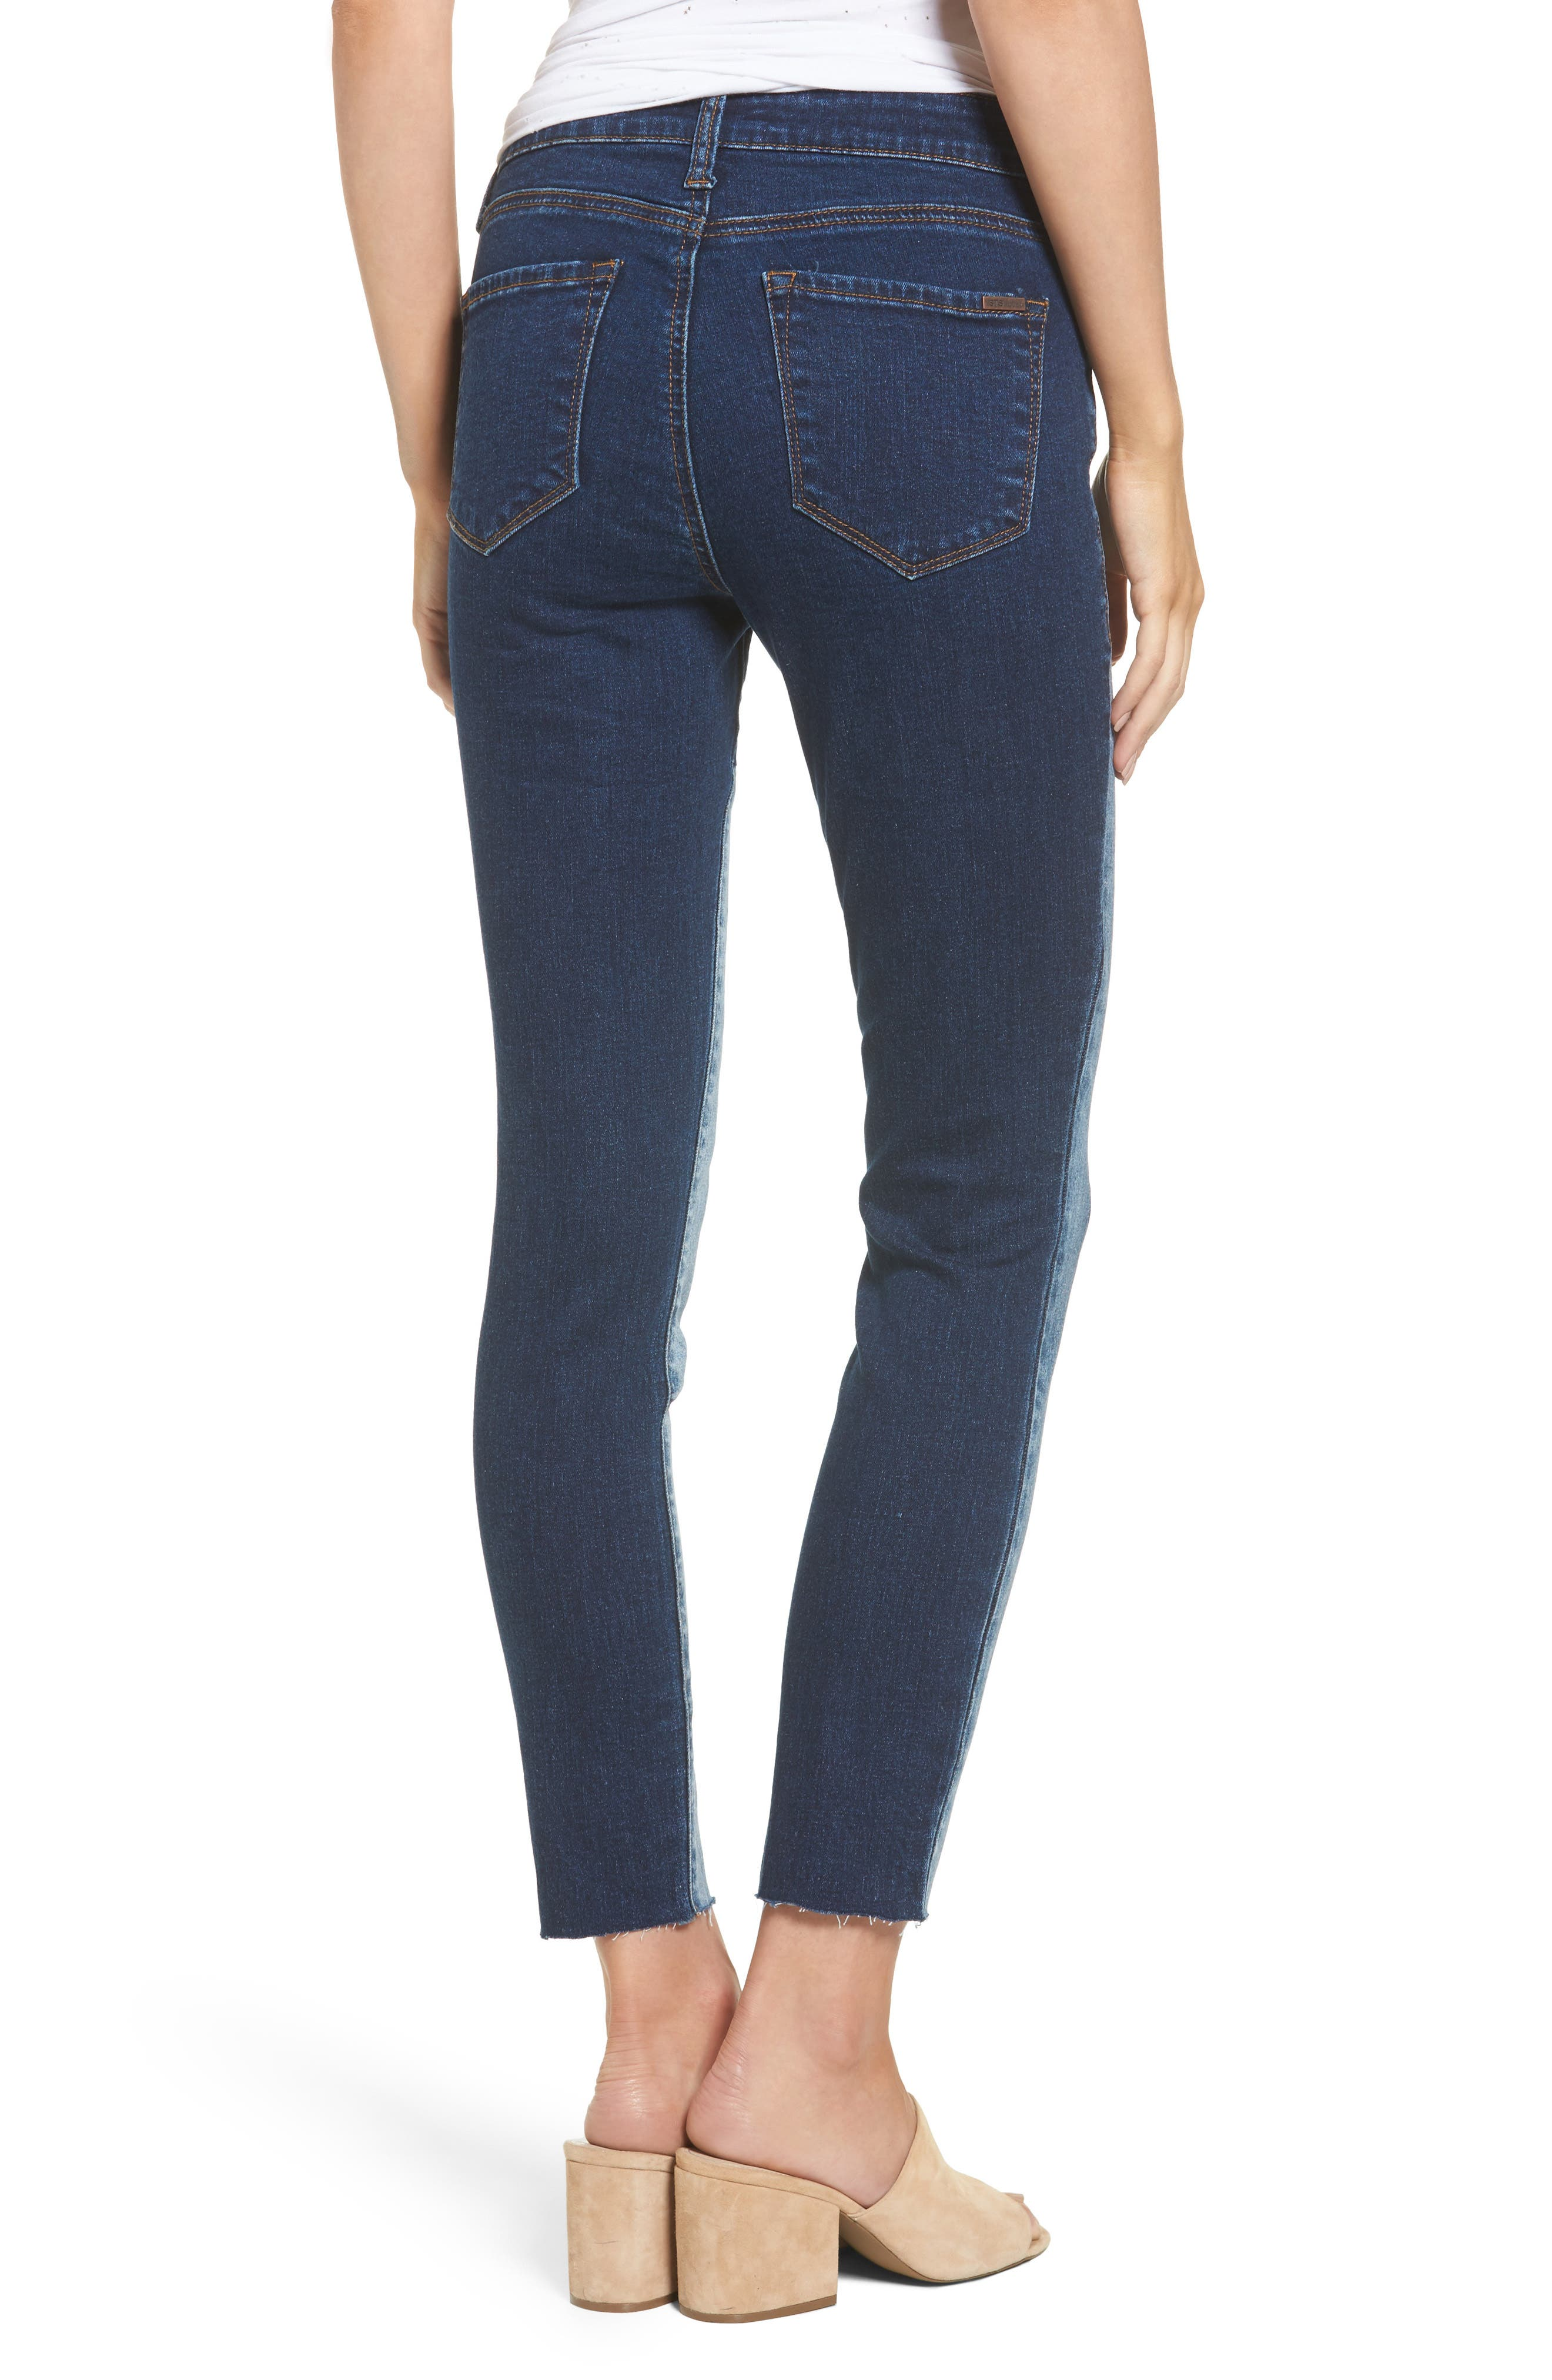 Piper Colorblock Ankle Skinny Jeans,                             Alternate thumbnail 2, color,                             400